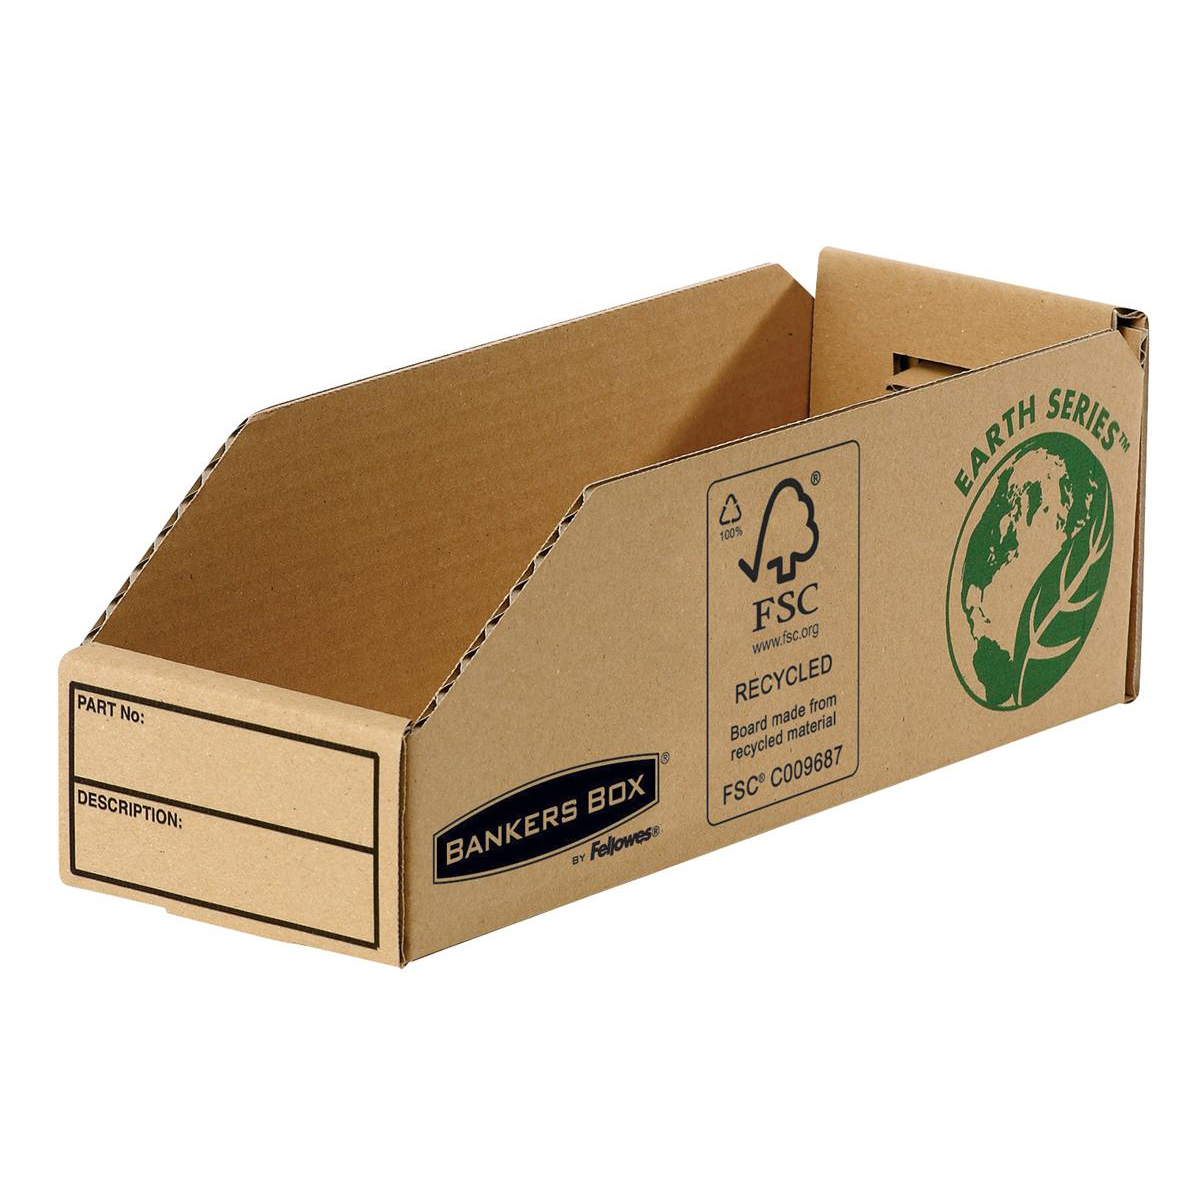 Containers Bankers Box by Fellowes Parts Bin Corrugated Fibreboard Packed Flat W98xD280xH102mm Ref 07353 Pack 50